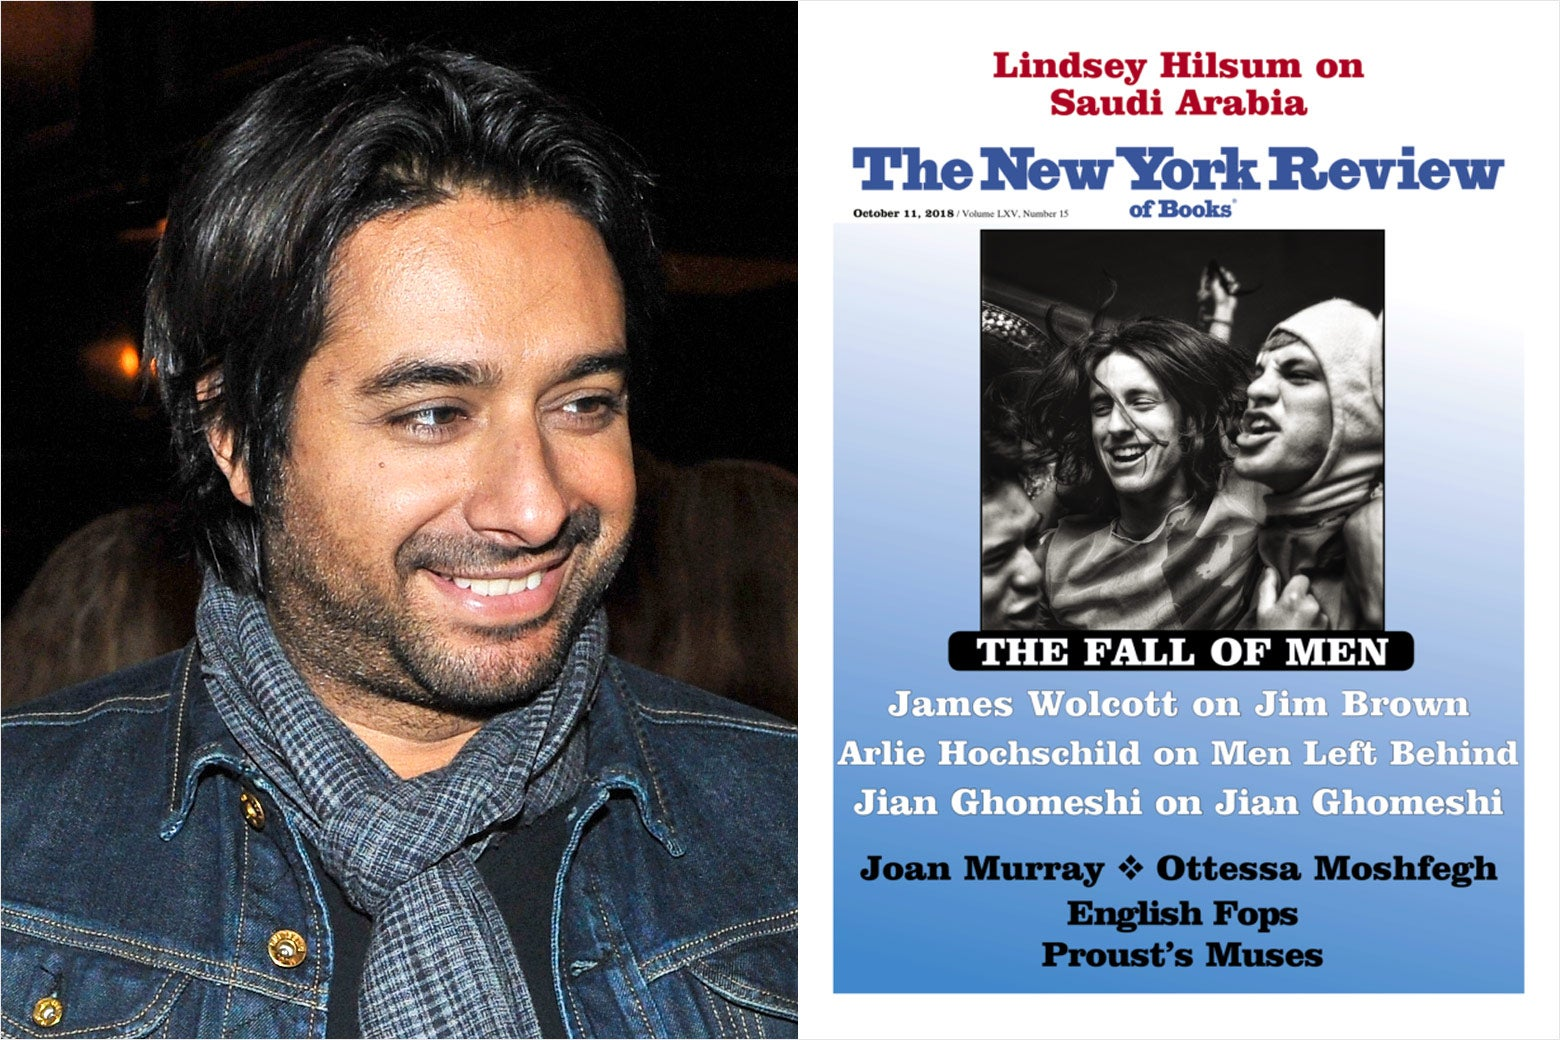 slate.com - Isaac Chotiner - Why Did the New York Review of Books Publish That Jian Ghomeshi Essay?